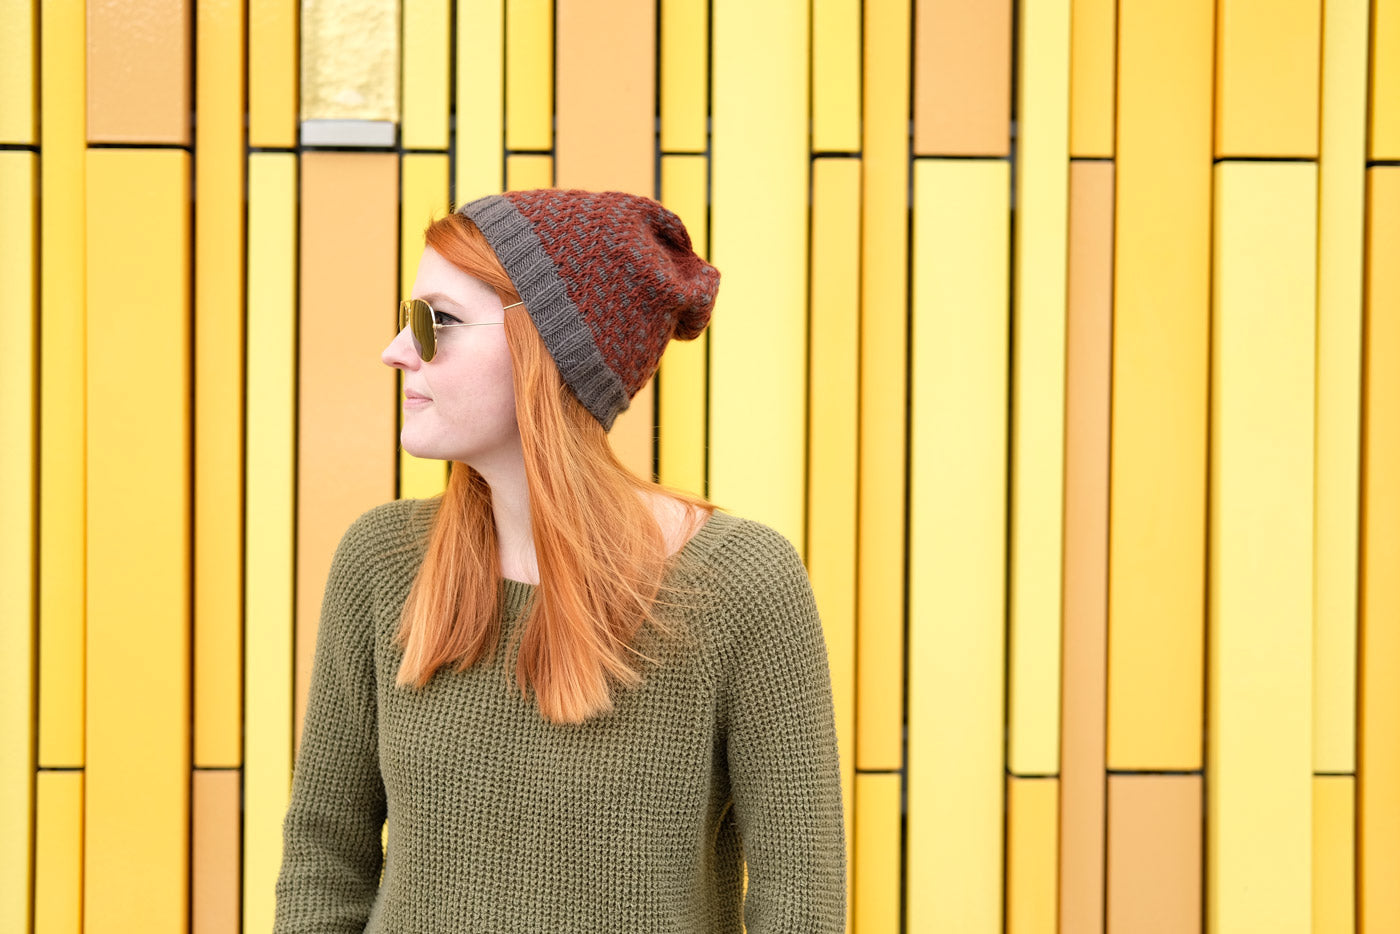 Lauren in sunglasses and her Tincture hat in front of bright yellow wall